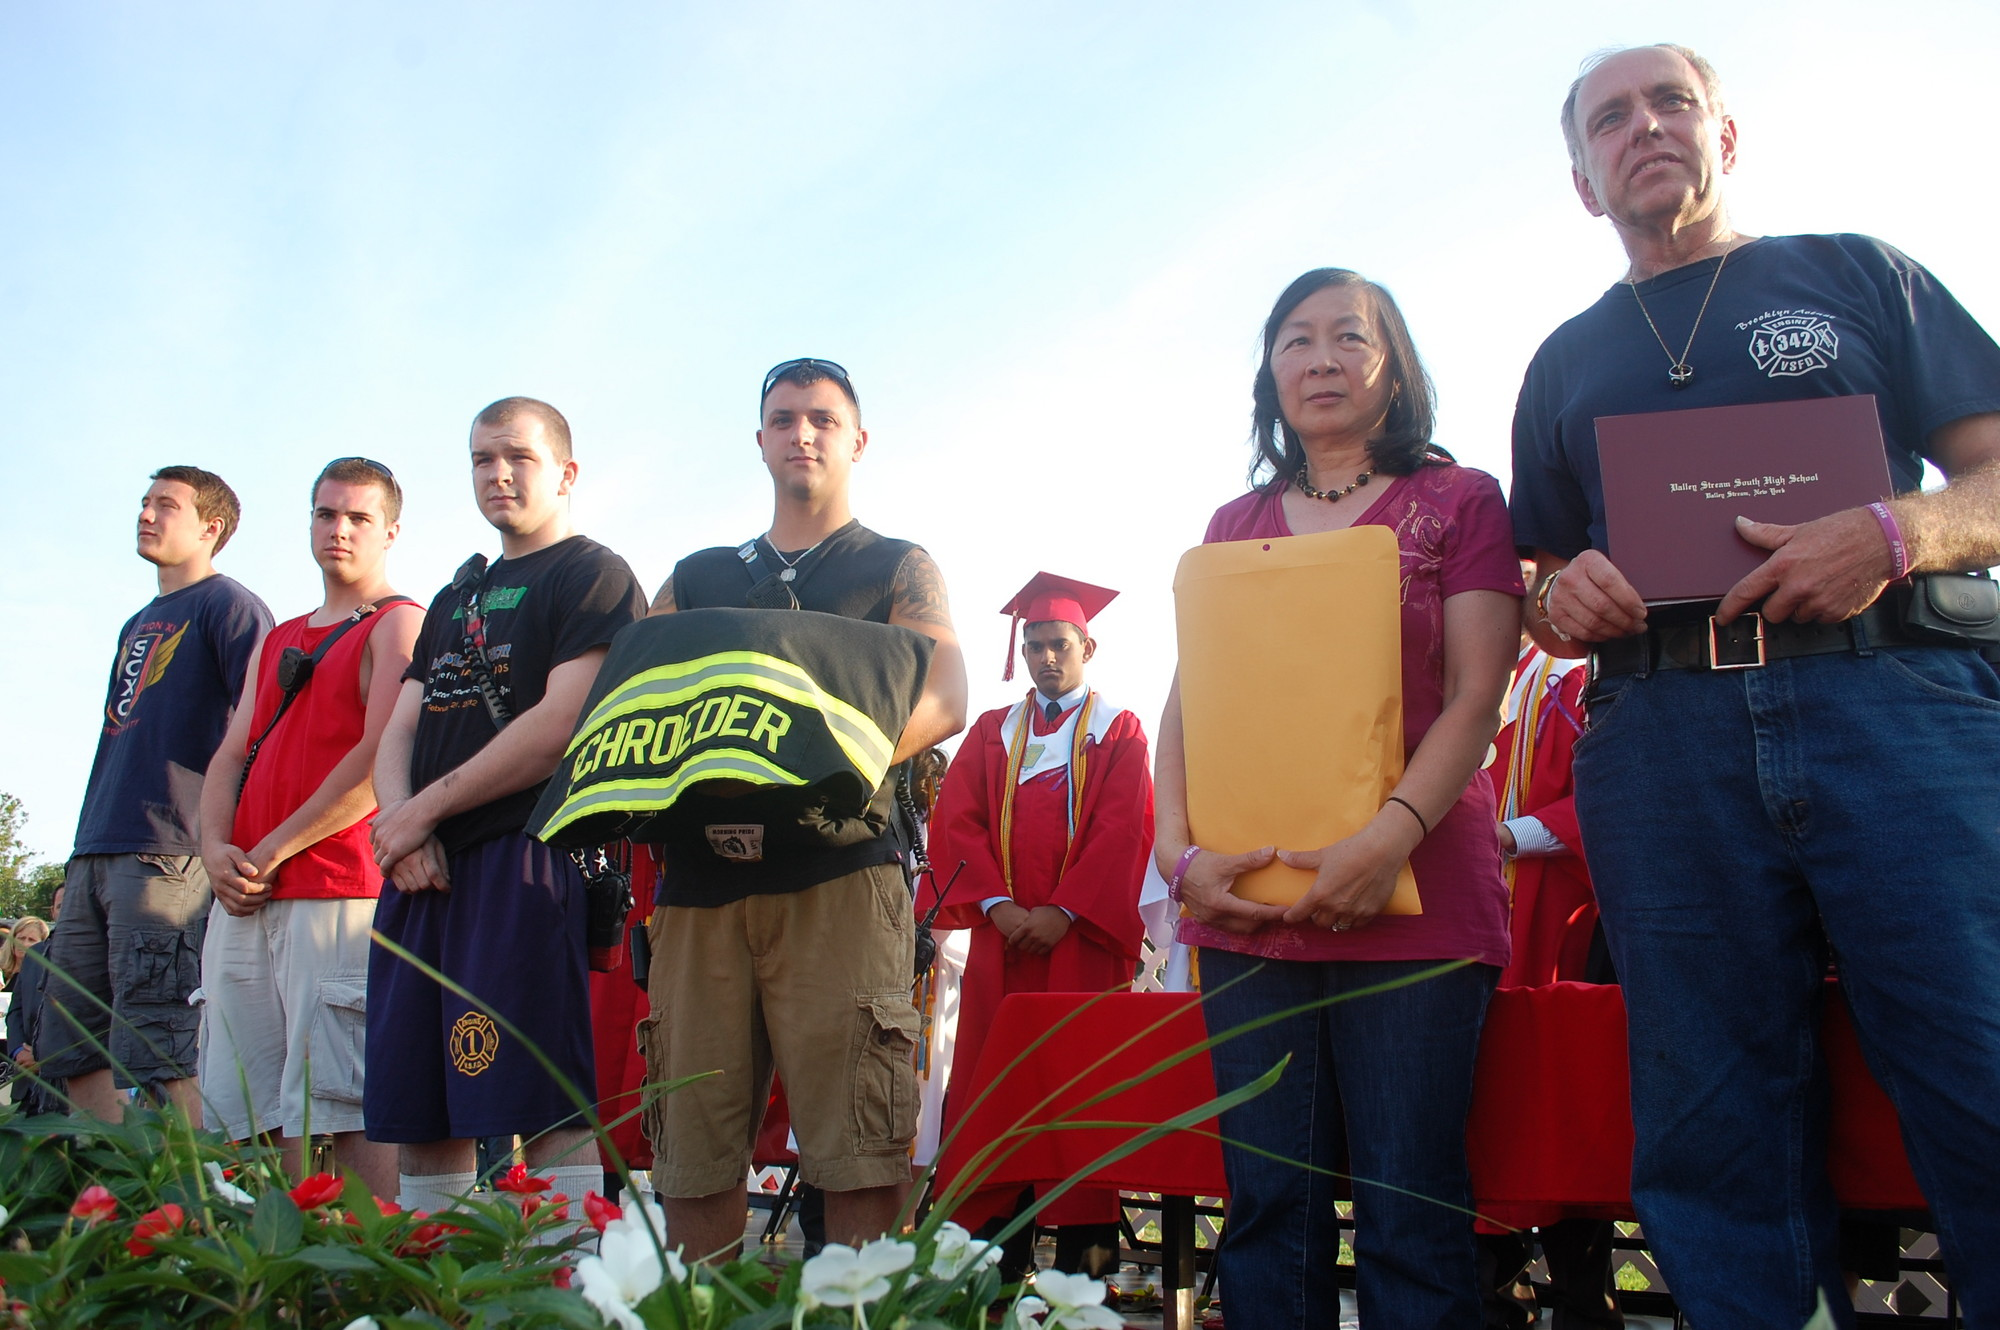 Members of the Valley Stream Fire Department joined Carole and Wally Schroeder on stage who were presented with a diploma for their son, Chris.